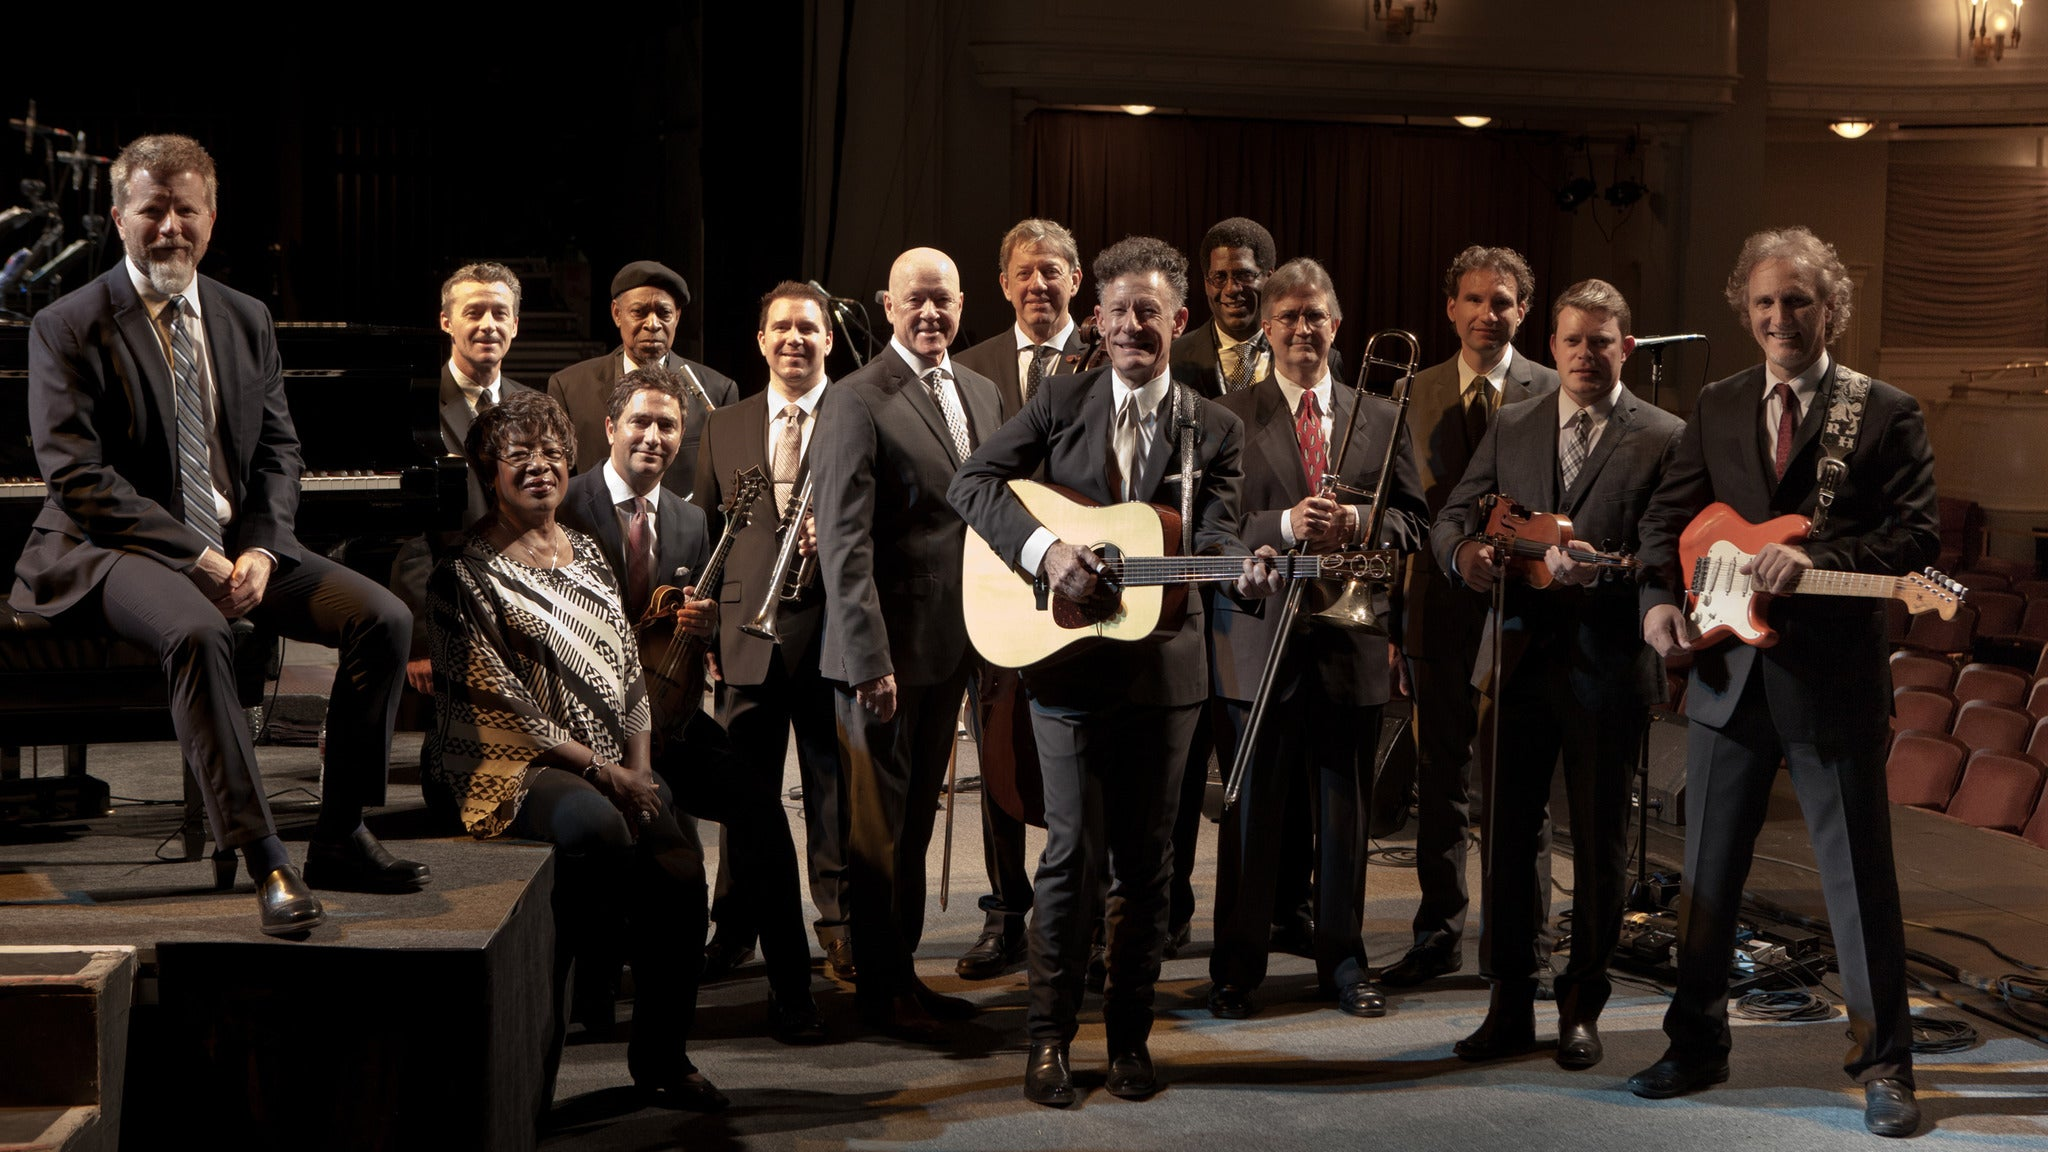 Lyle Lovett at California Center for the Arts